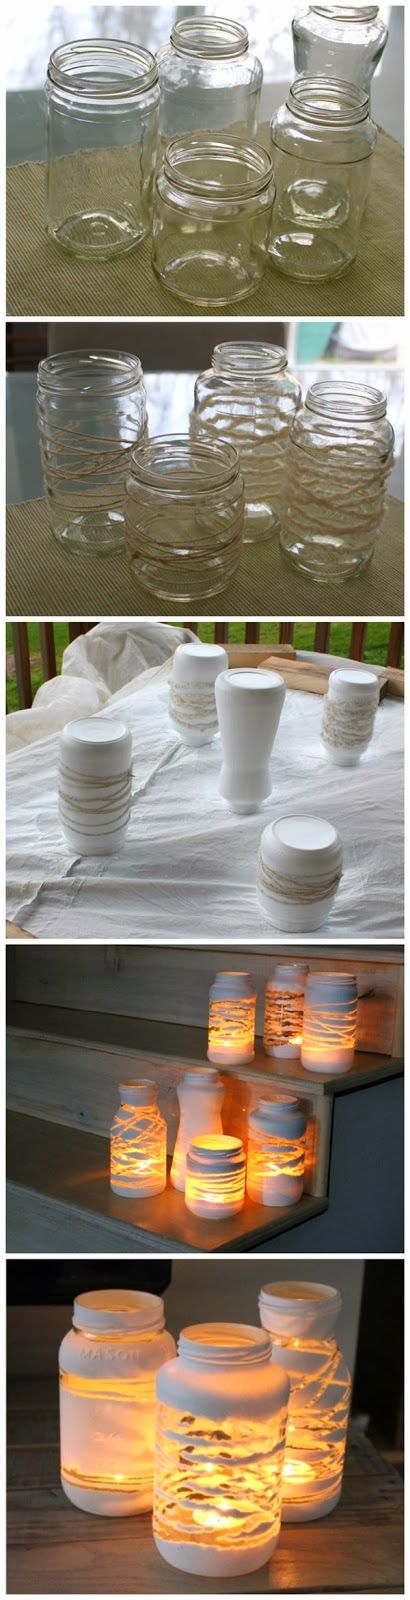 Diy : yarn wrapped painted jars | DIY & Crafts Tutorials